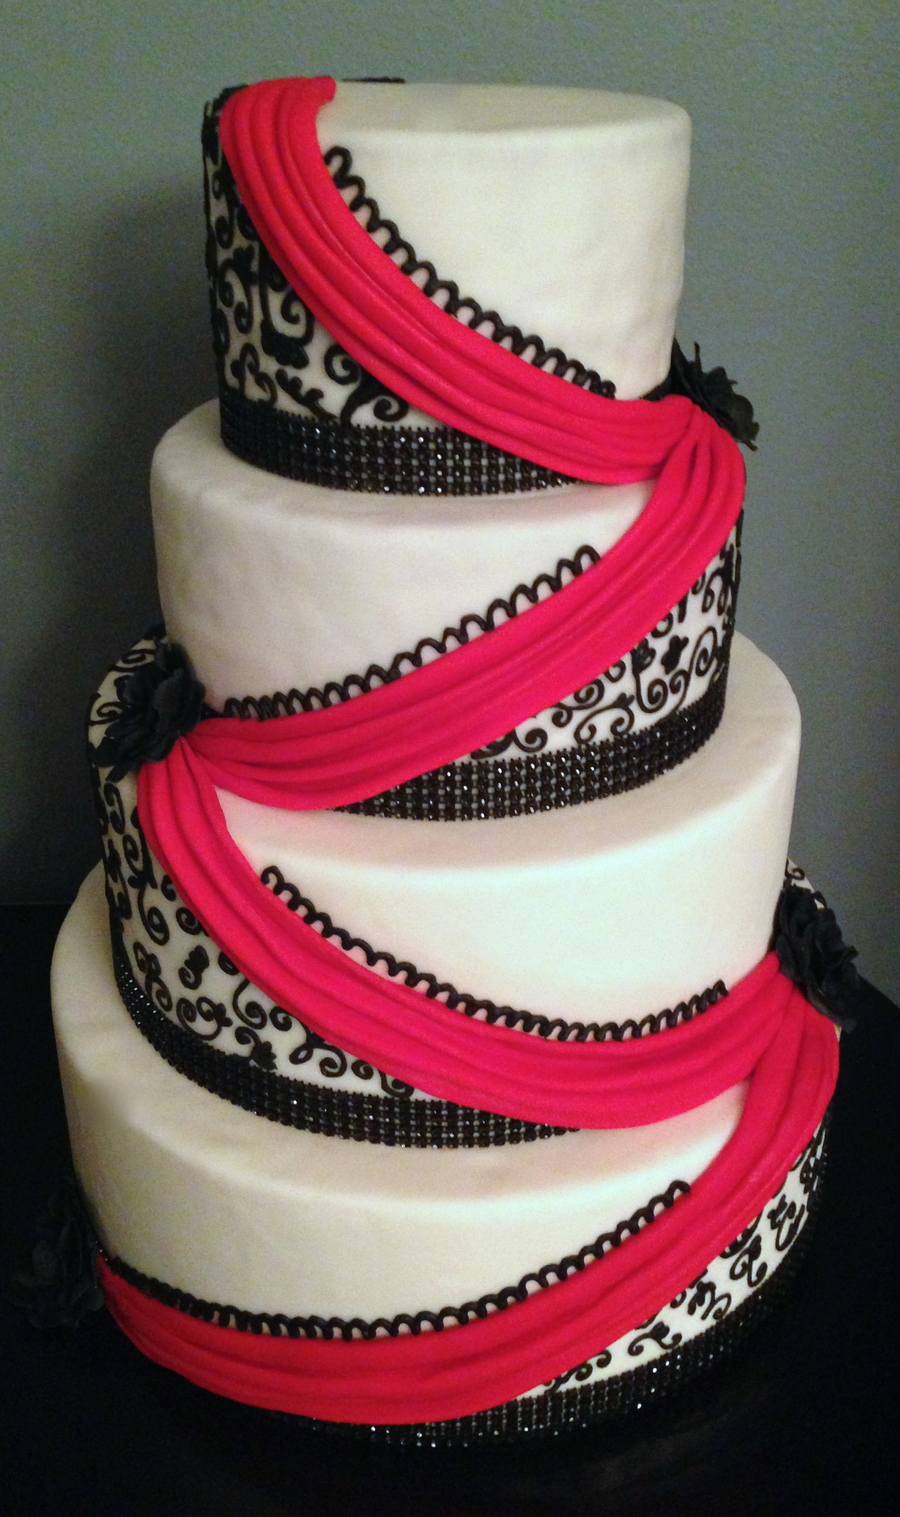 Red and Black swirls   That's My Cake!   Affordable Wedding Cakes Black And Red